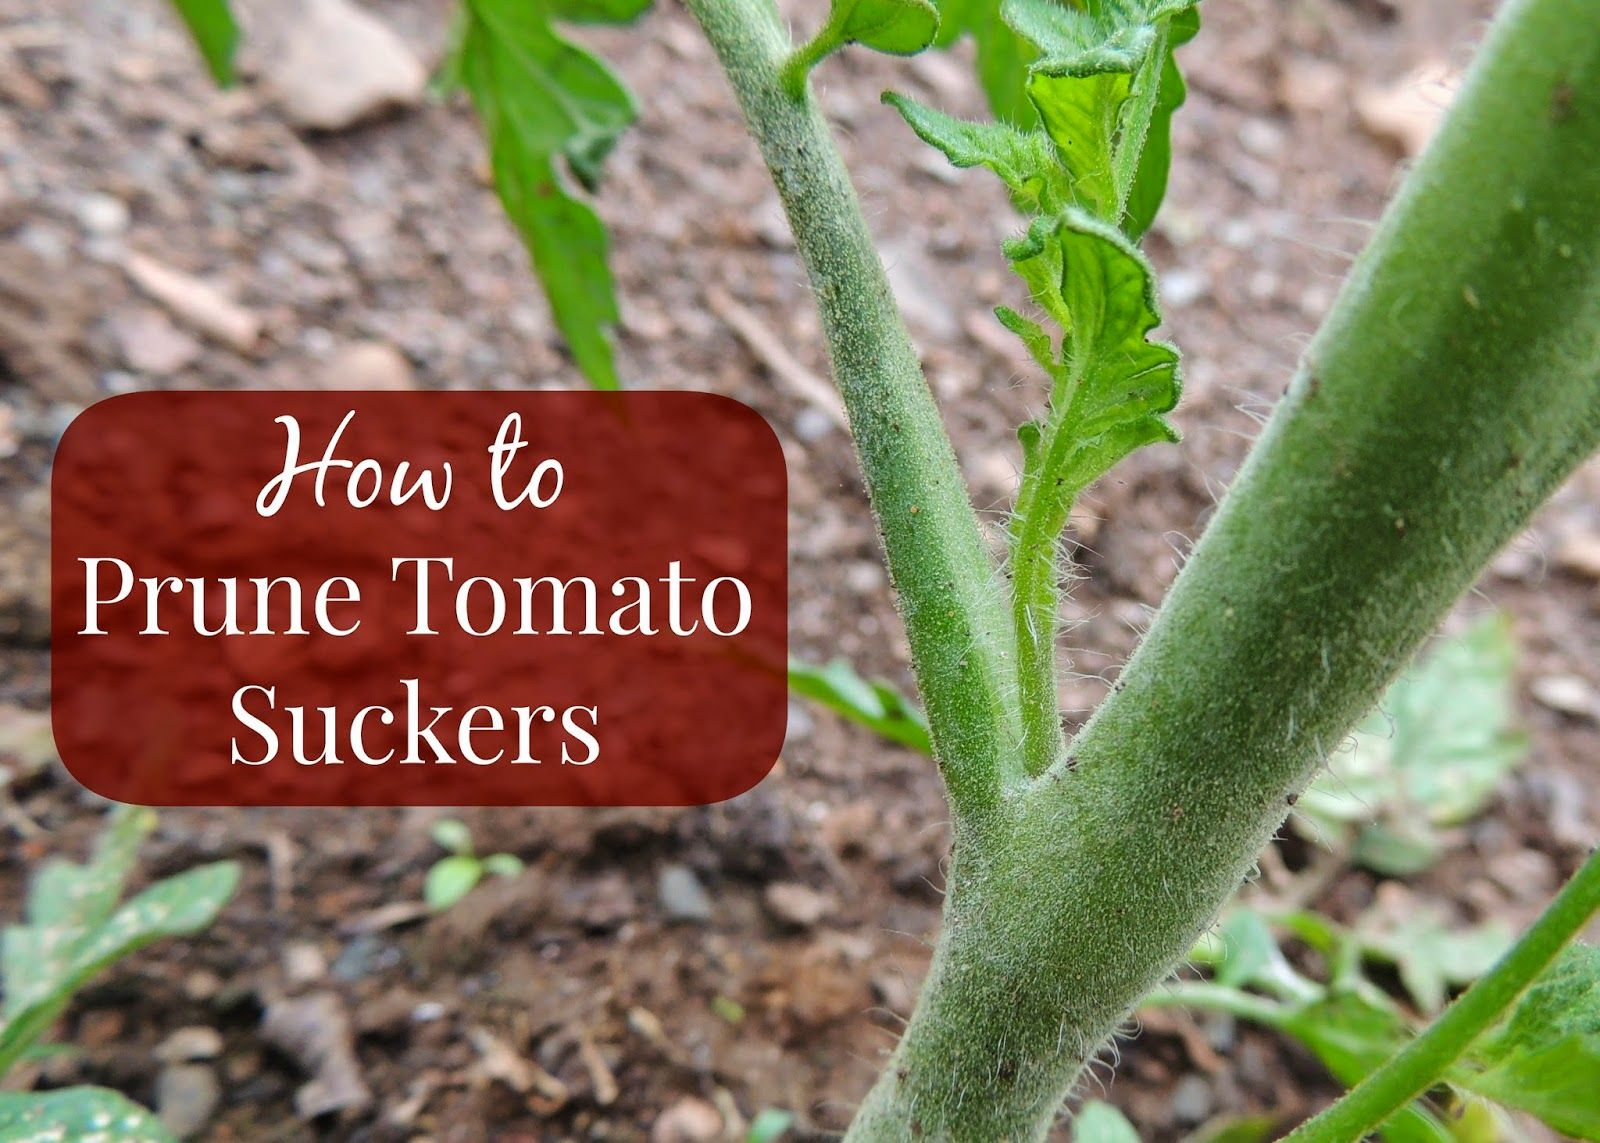 How To Root Tomato Suckers And Grow New Plants Huerta Prune Tomatoes Diagram Of Plant